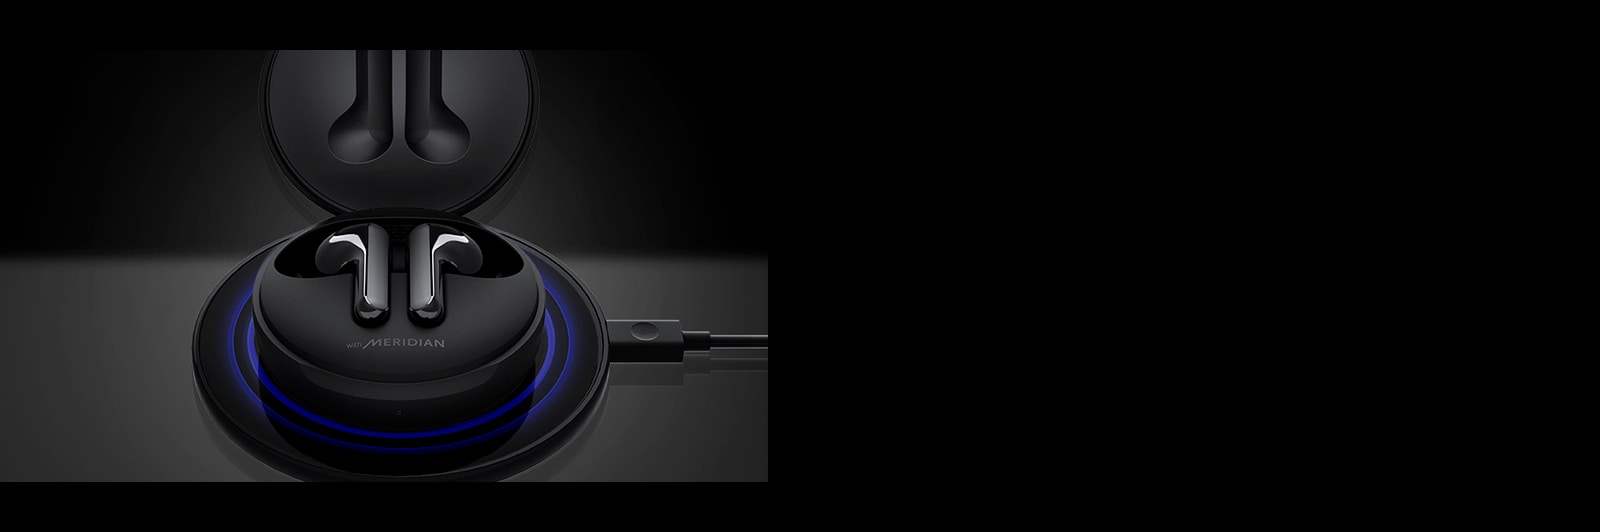 An image of a black LG TONE Free FN6 opened up charging on a black wireless charging pad with blue lighting